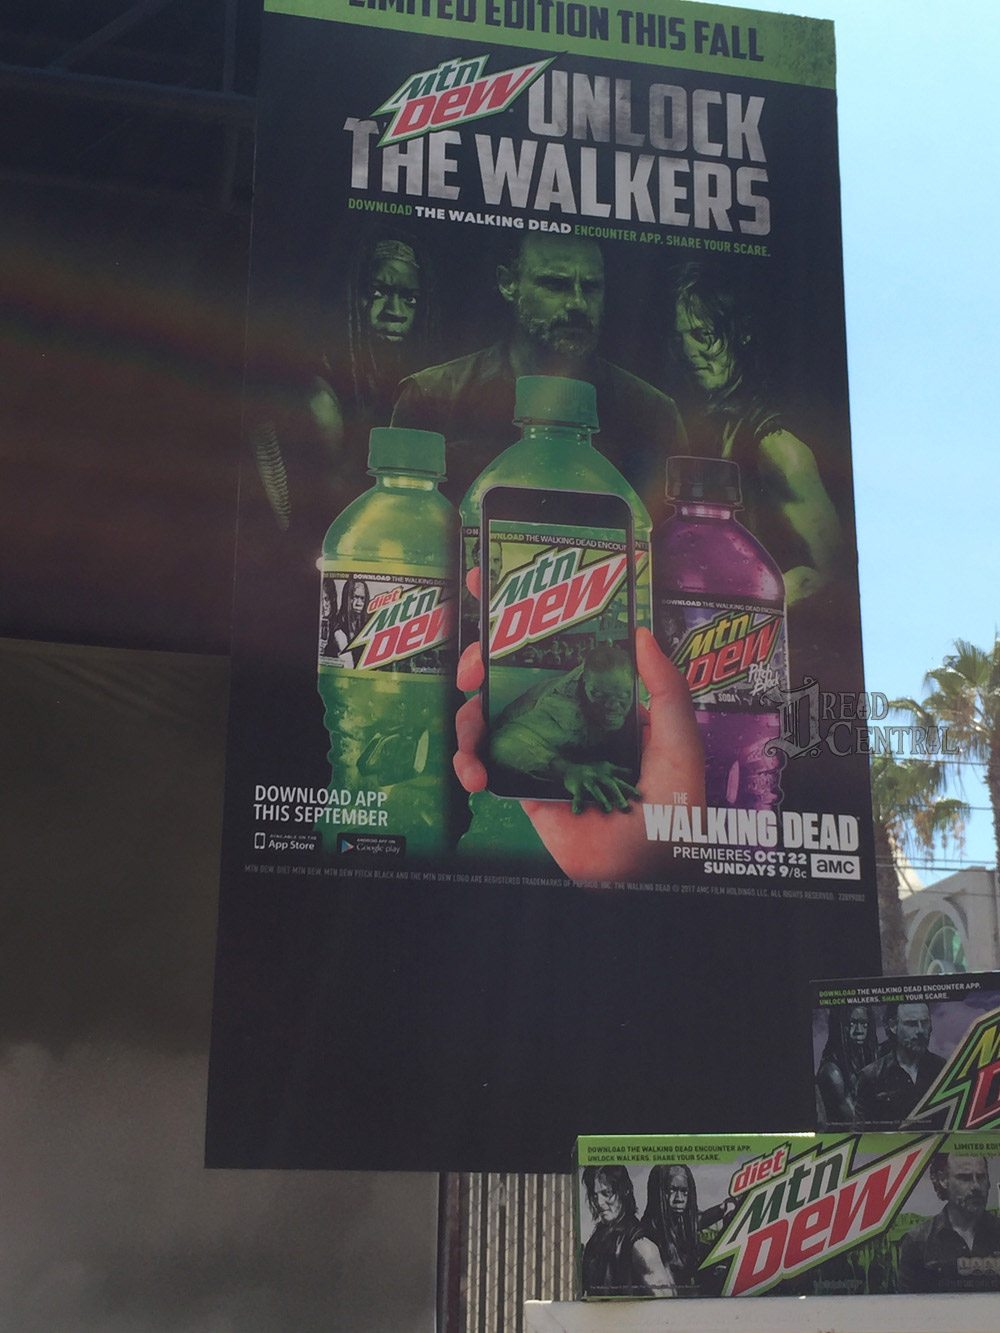 twd dq 3 - AMC and Mountain Dew Team for The Walking Dead Encounter Augmented Reality App